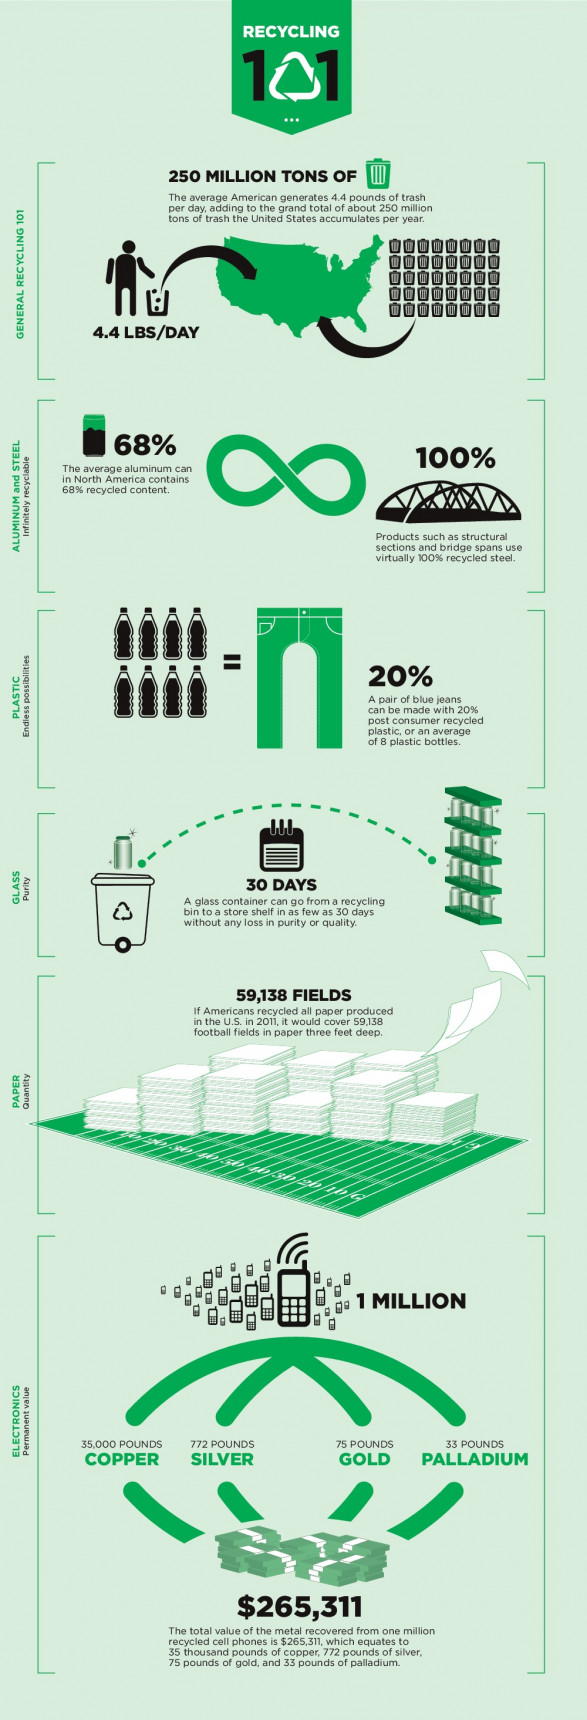 Recycling 101 - America Recycles Day is November 15